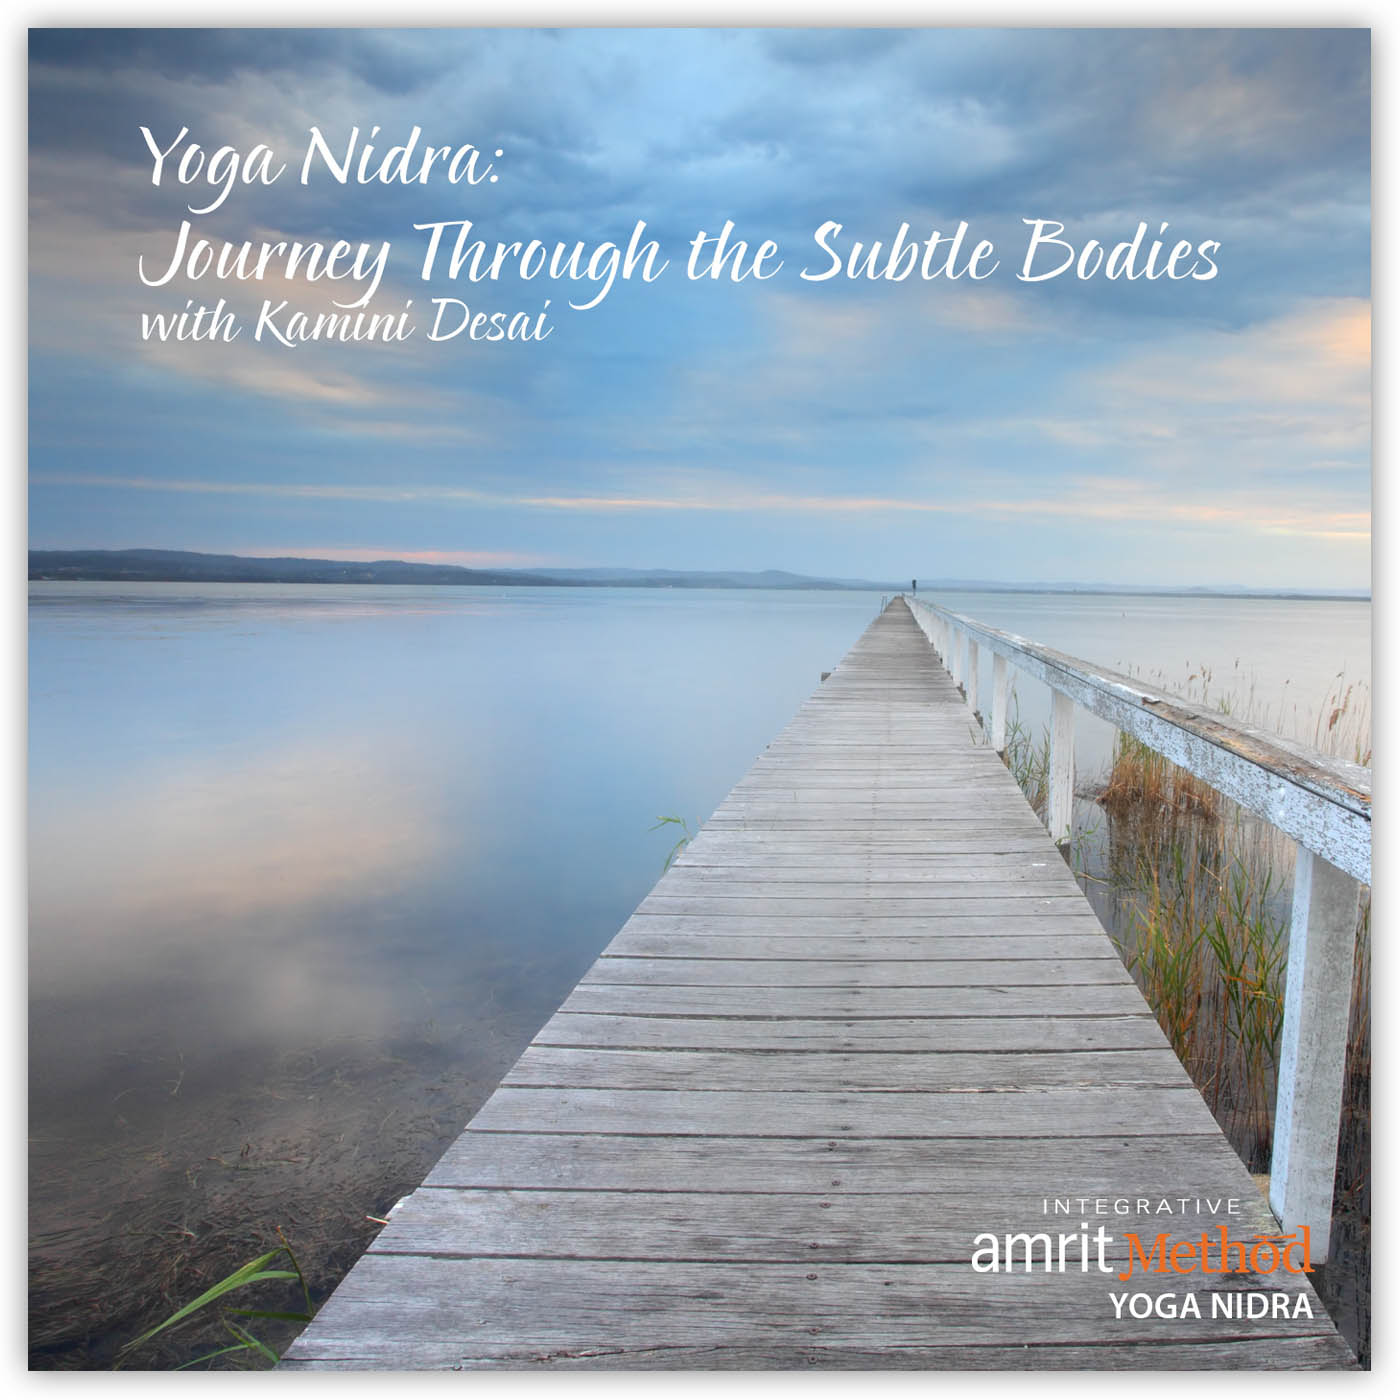 Yoga Nidra – Journey through the Subtle Bodies (Koshas) with Kamini Desai PhD